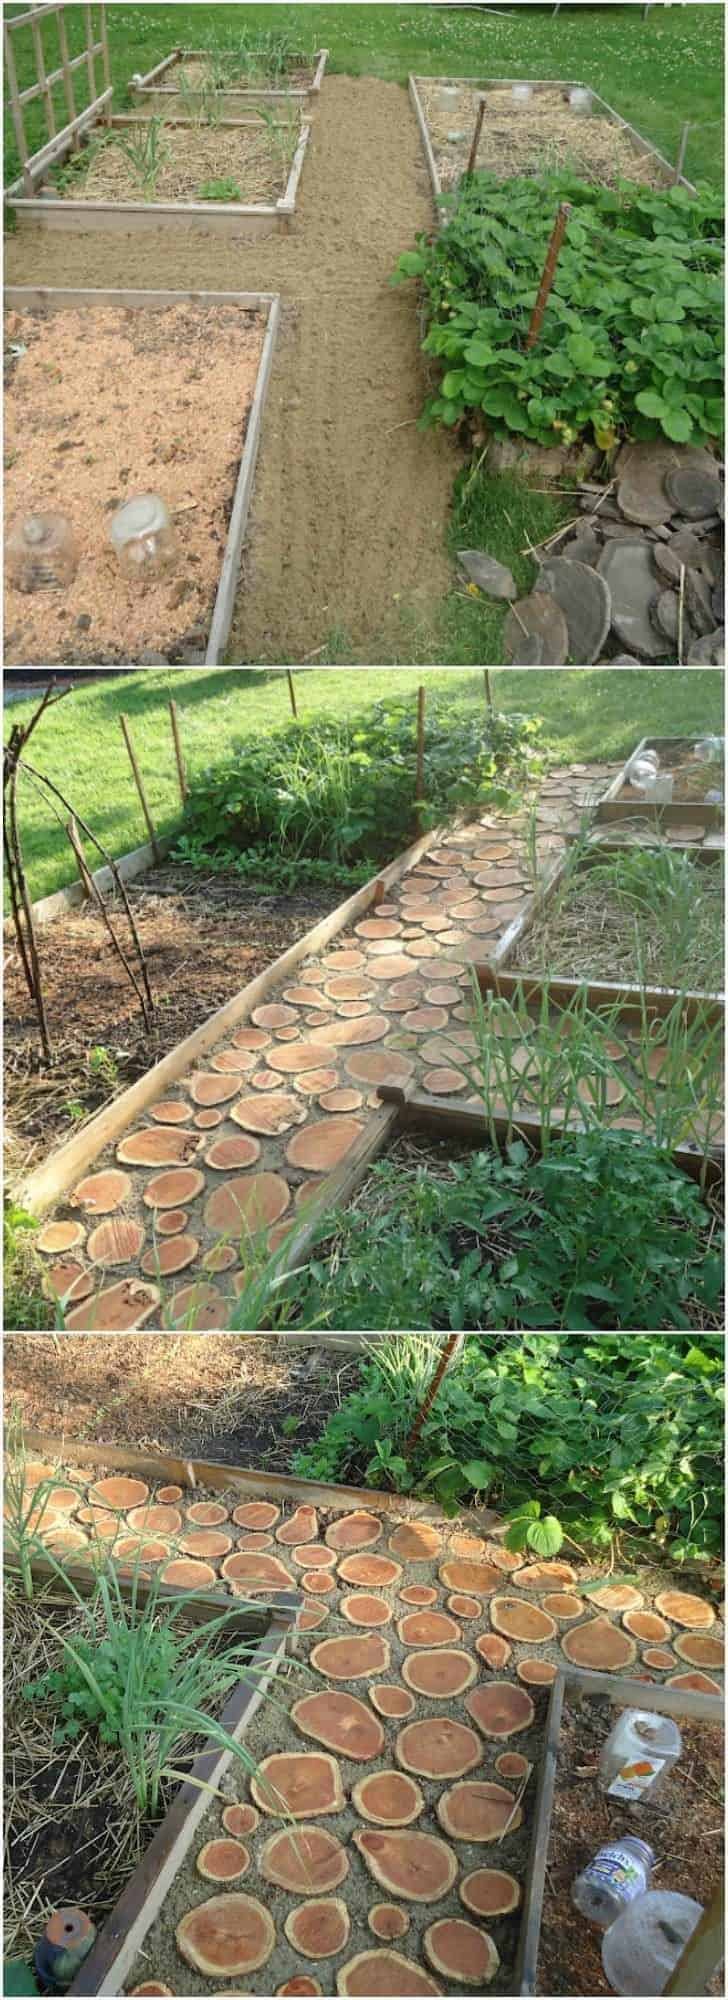 How to Make a Great Wood Logs Garden Pathway Garden Decor